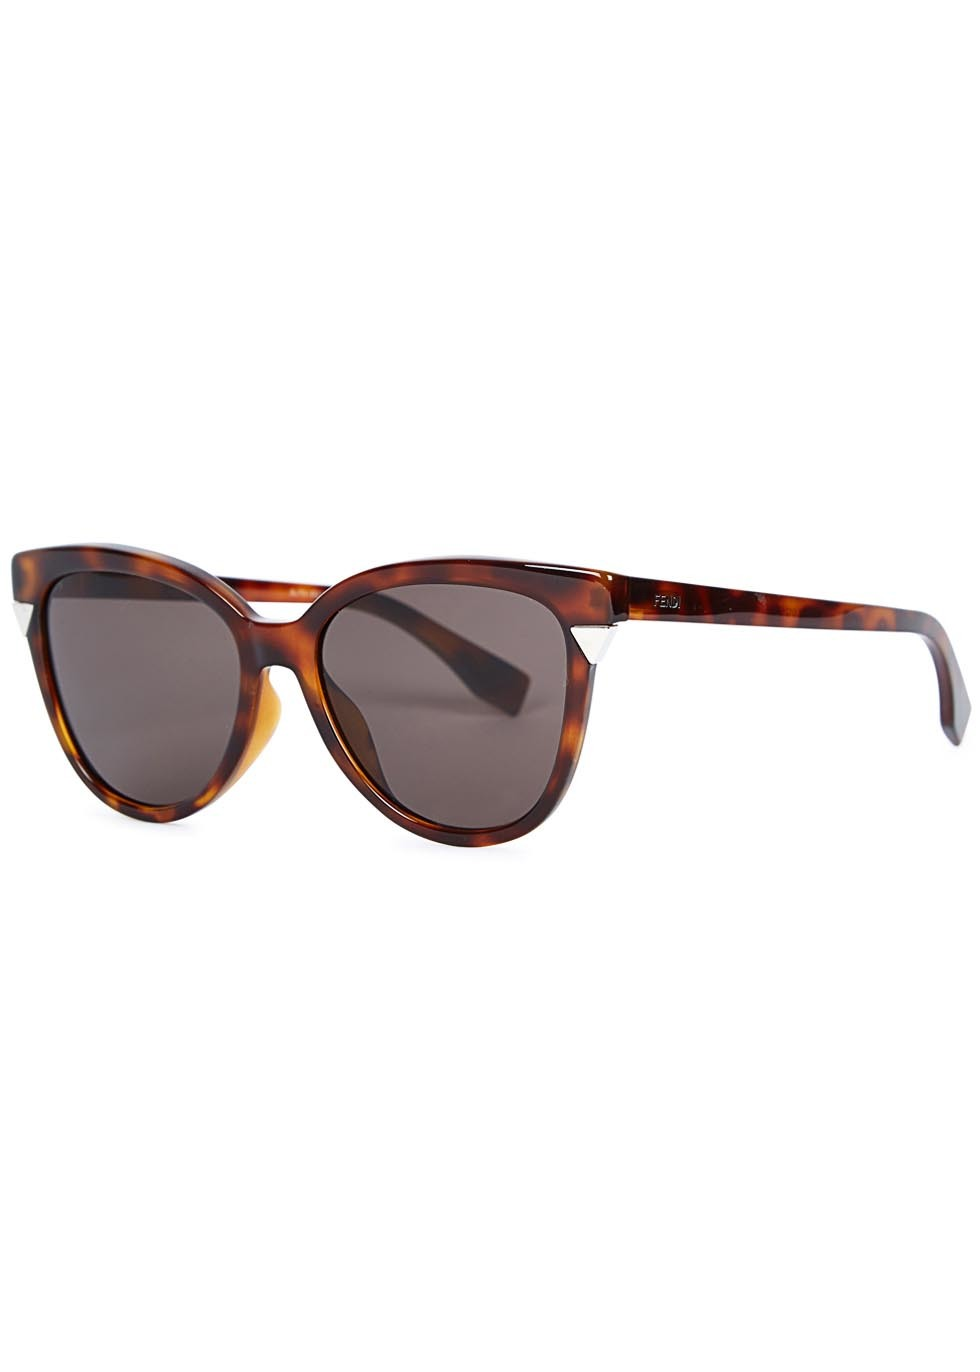 Tortoiseshell Wayfarer Style Sunglasses - predominant colour: chocolate brown; secondary colour: camel; occasions: casual, holiday; style: d frame; size: large; material: plastic/rubber; pattern: tortoiseshell; finish: plain; season: a/w 2015; wardrobe: basic